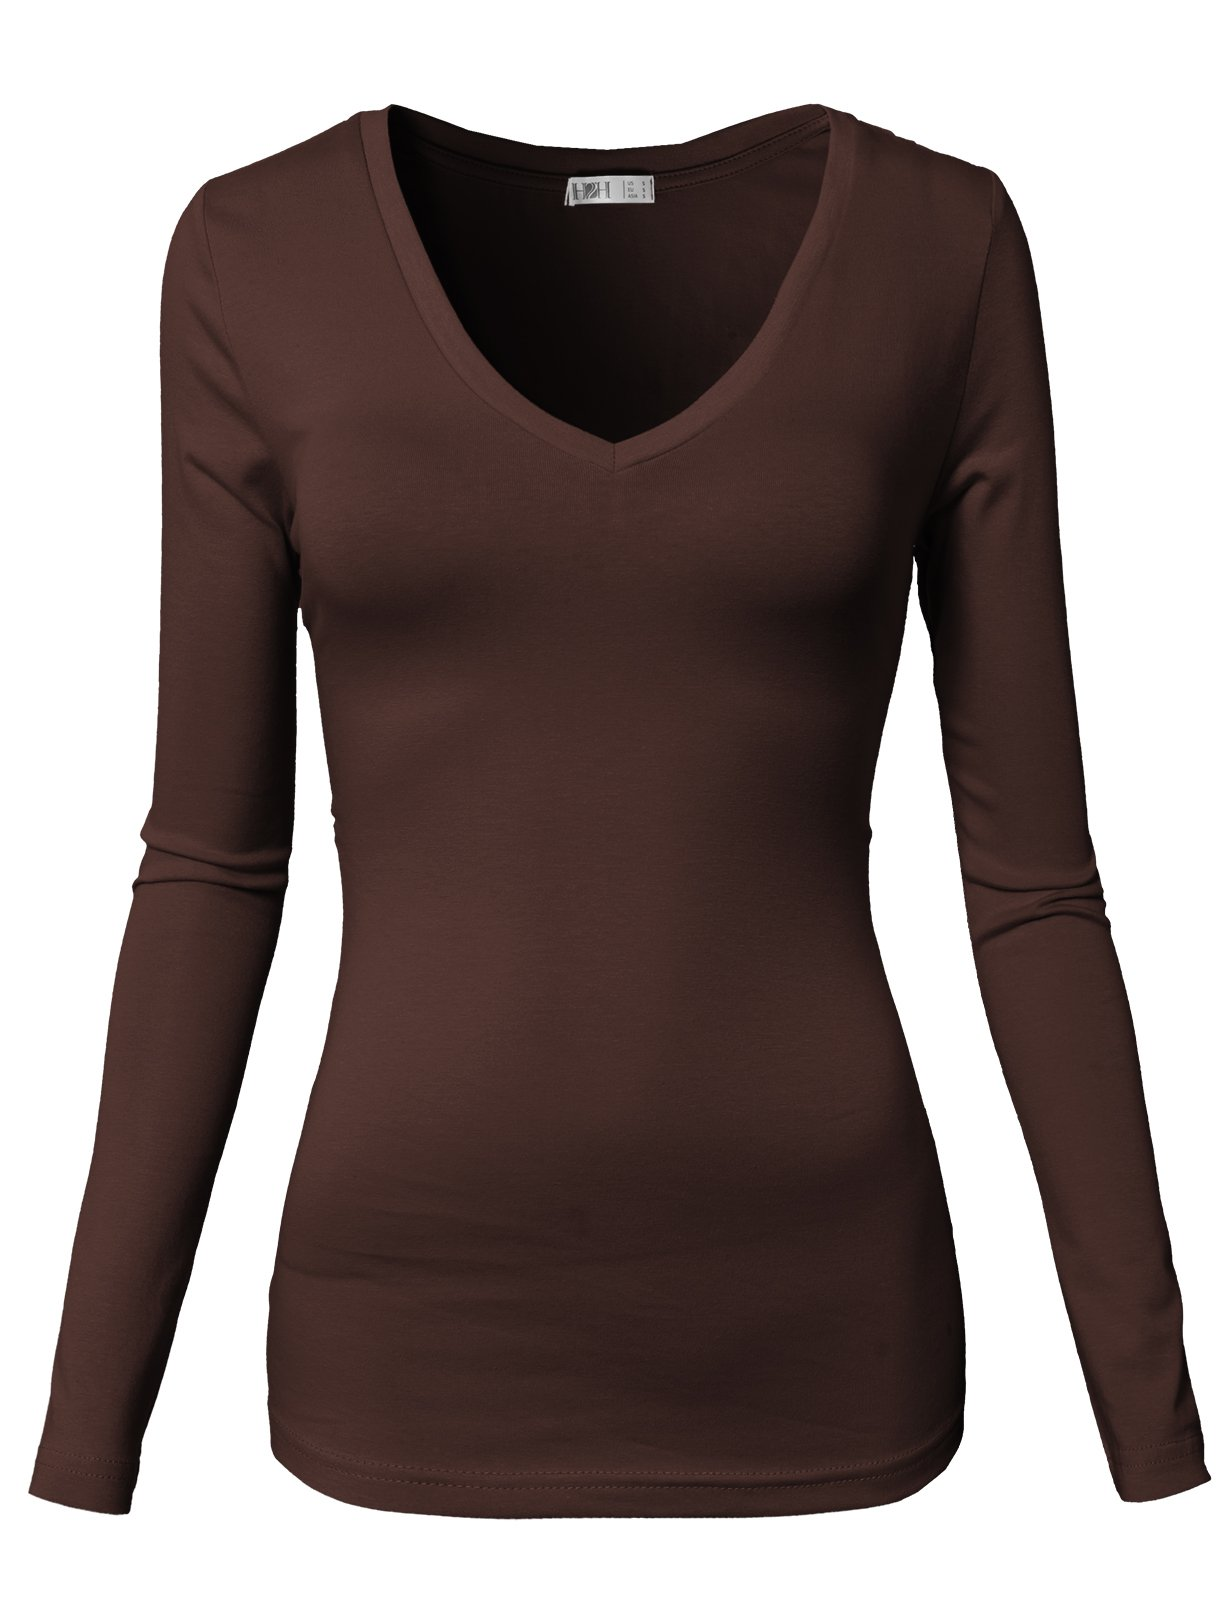 H2H Women's Plus Size Top, The Perfect Tunic Brown US M/Asia M (CWTTL0172)